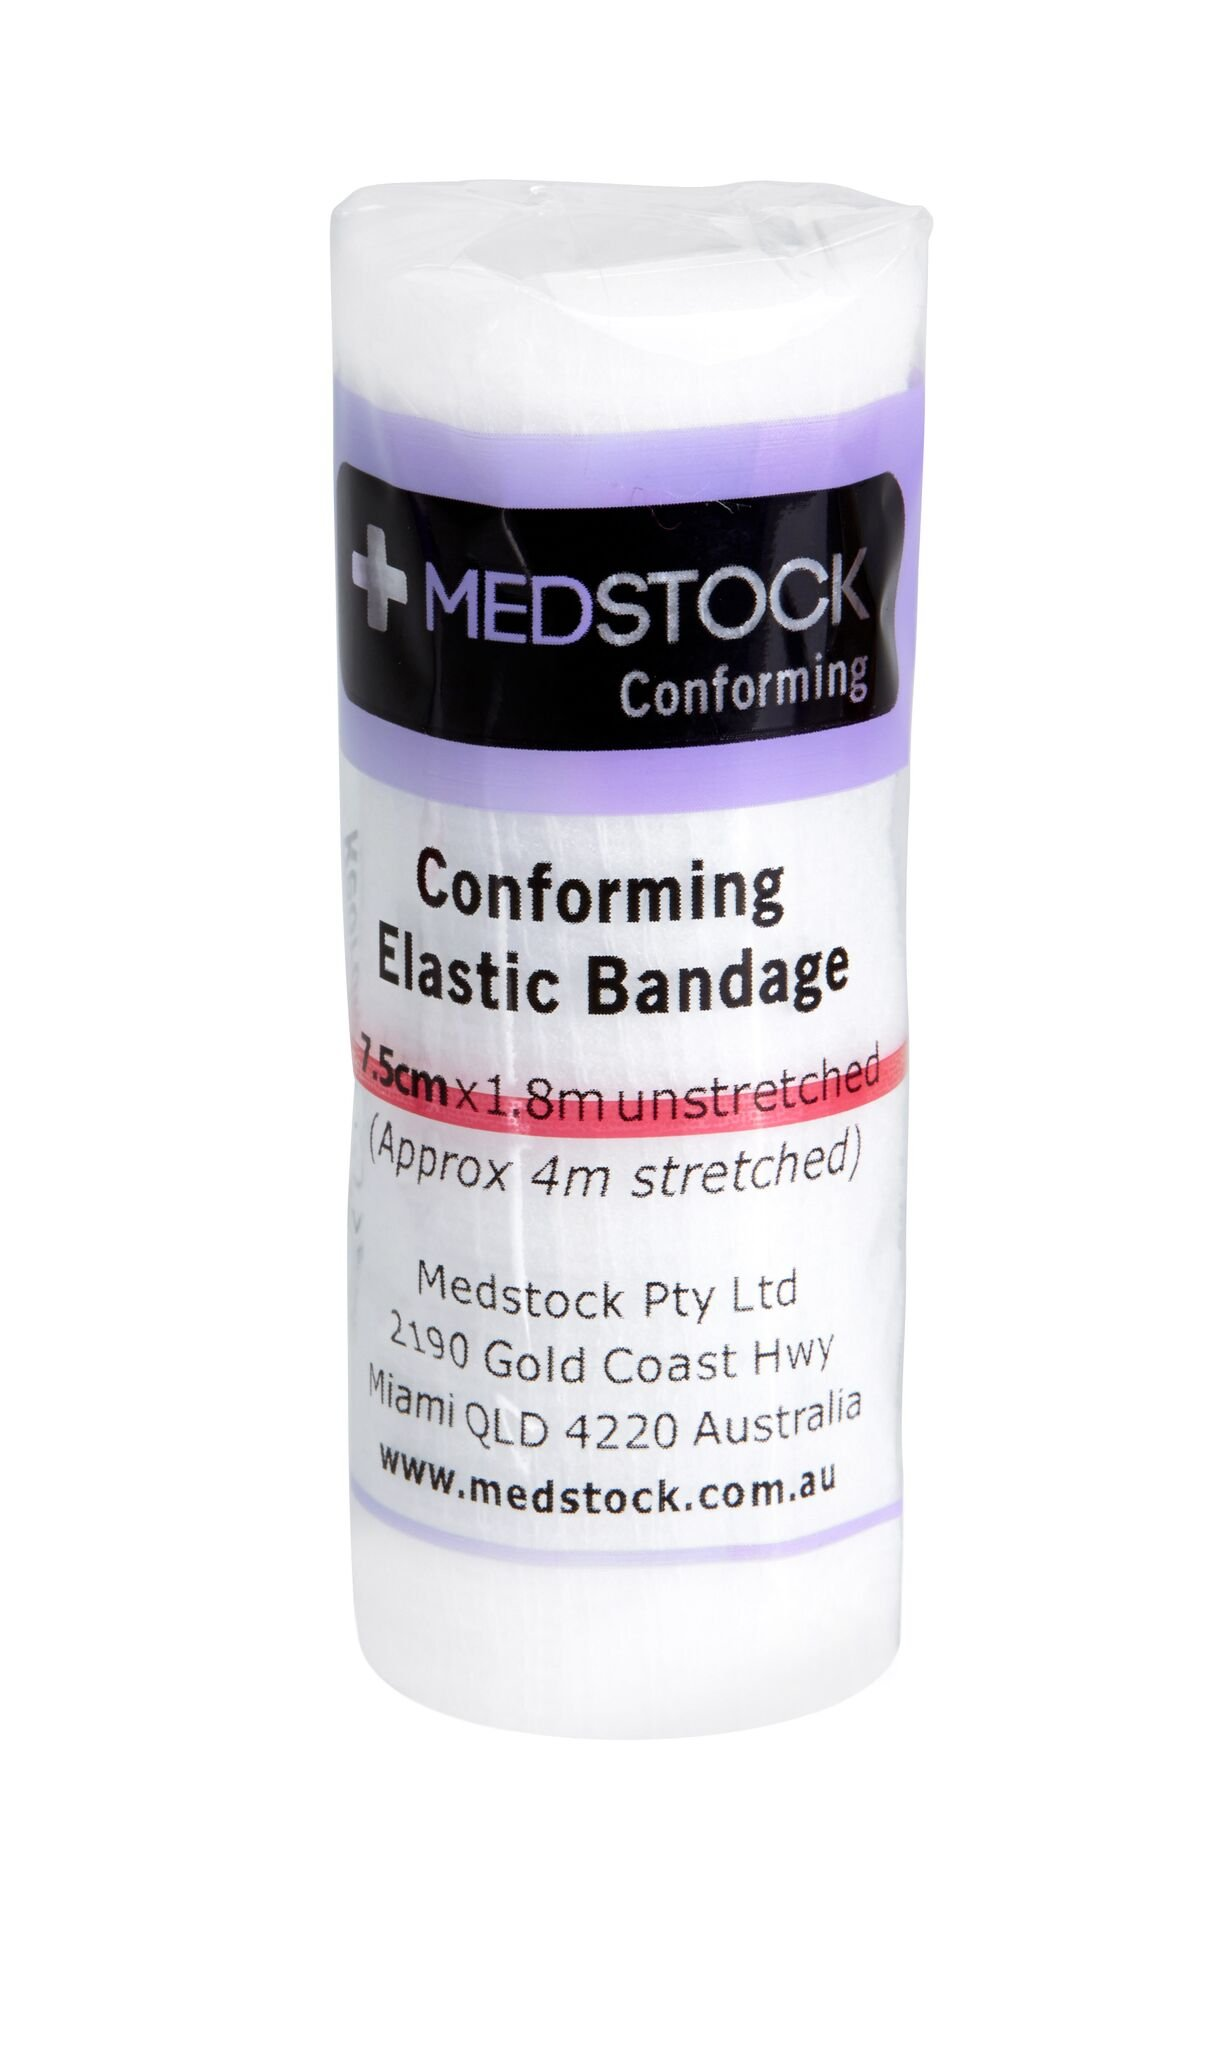 MEDSTOCK CREPE LIGHT BANDAGE 7.5CM X 1.8M, BOX 12